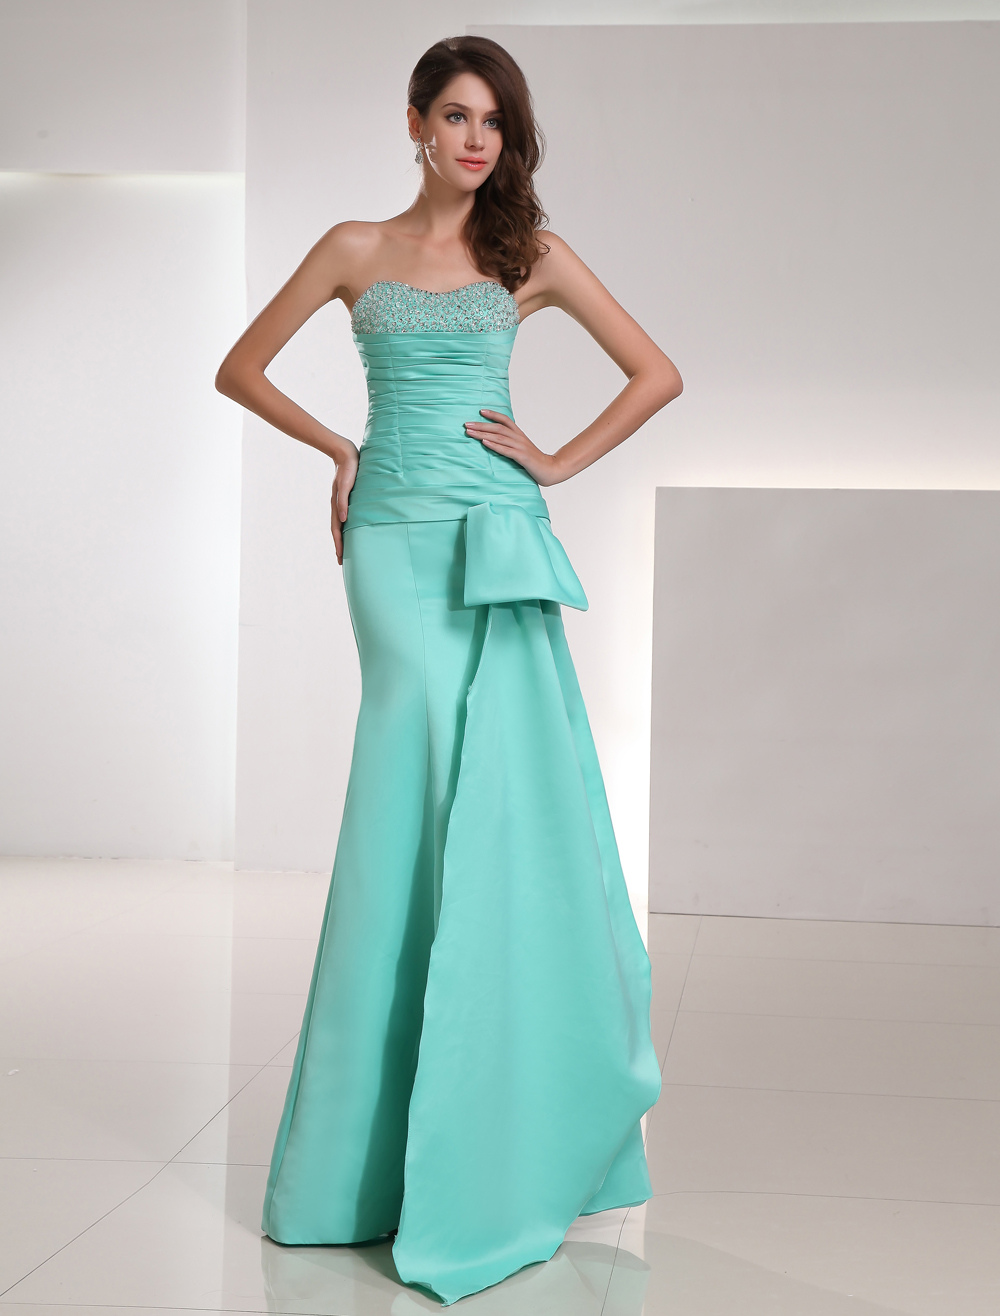 Mermaid  Evening Dress Strapless Sweetheart Satin Long Prom Dress Mint Green Beading Ruched Floor Length  Party Dress